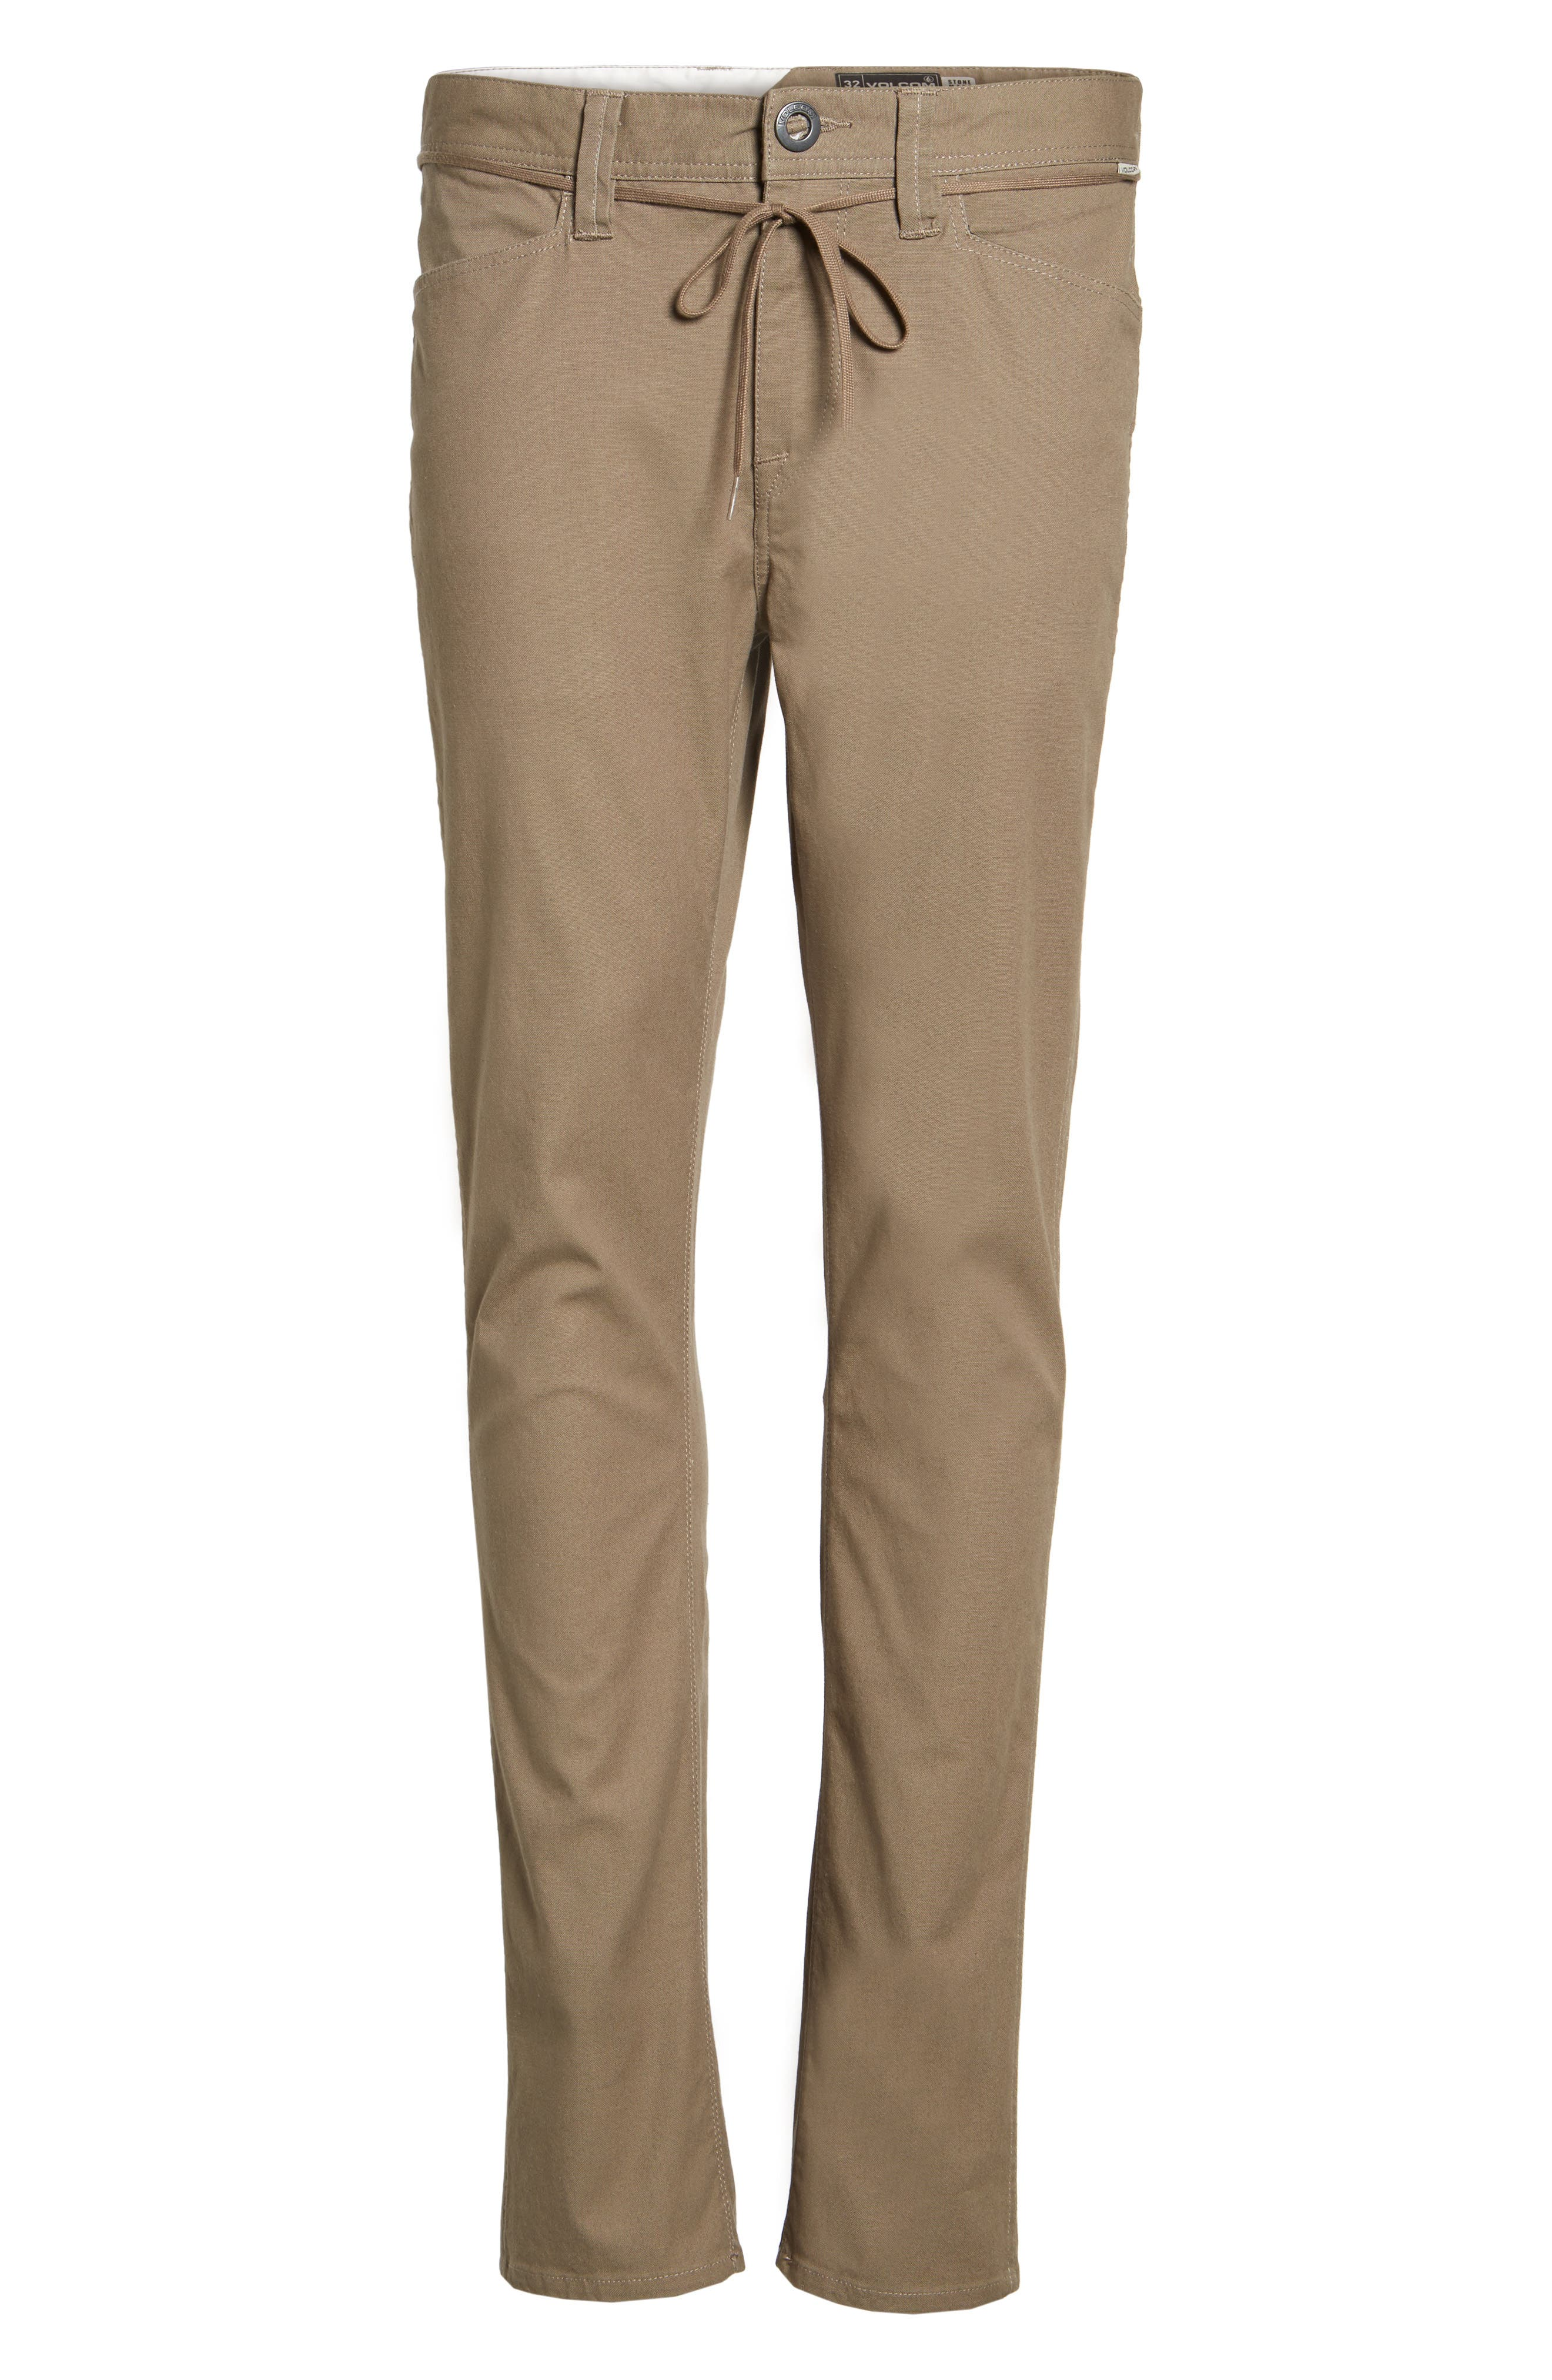 'VSM Gritter' Tapered Chinos,                             Alternate thumbnail 6, color,                             250